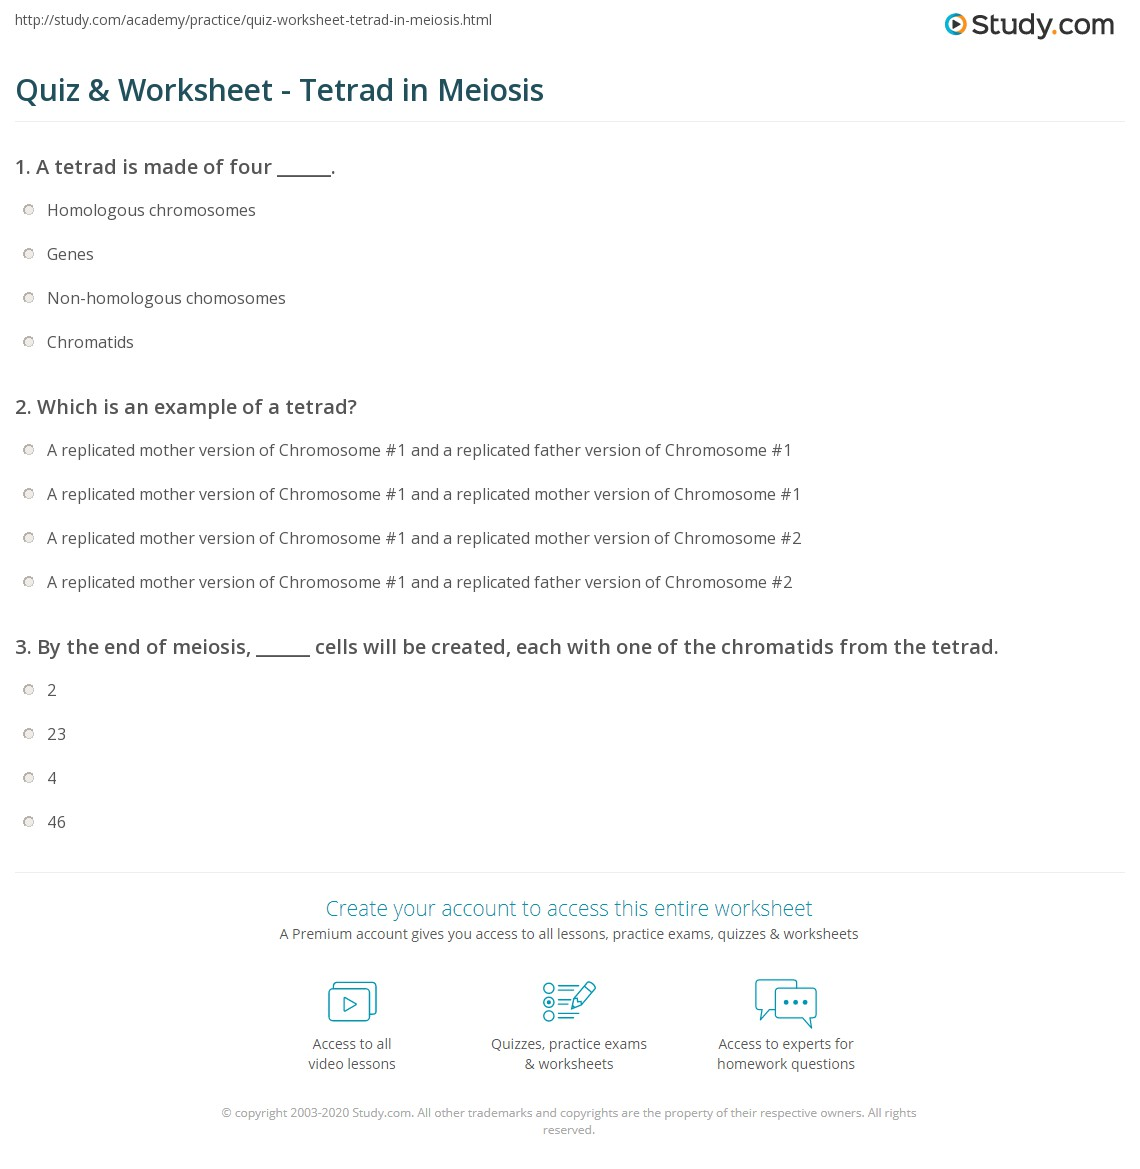 worksheet Snurfle Meiosis Worksheet workbooks meiosis worksheets free printable for pre quiz worksheet tetrad in study com